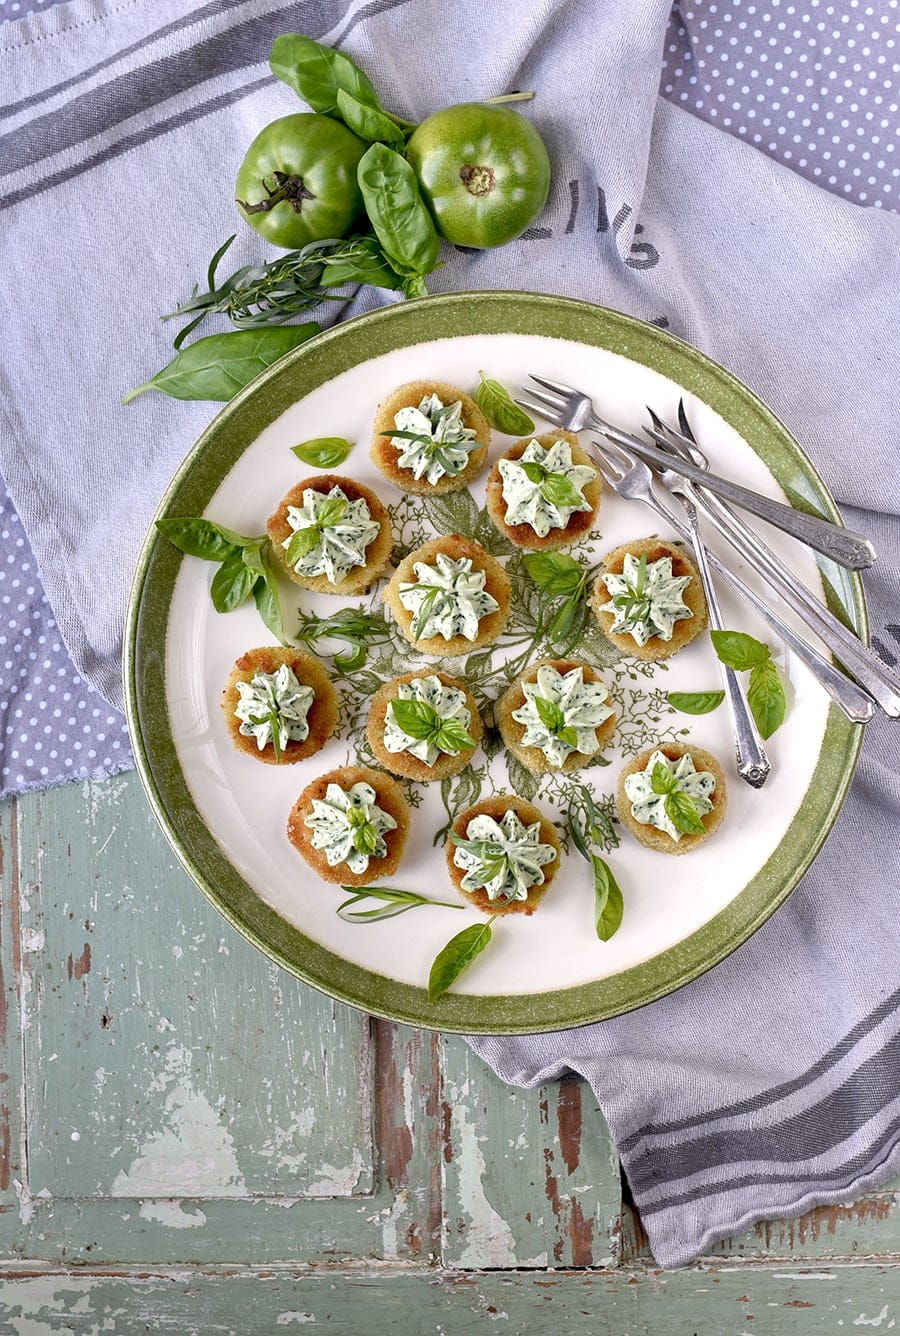 Fried Green Tomatoes 5226 Web - Fried Green Tomatoes </br>with Whipped Herb Chevre